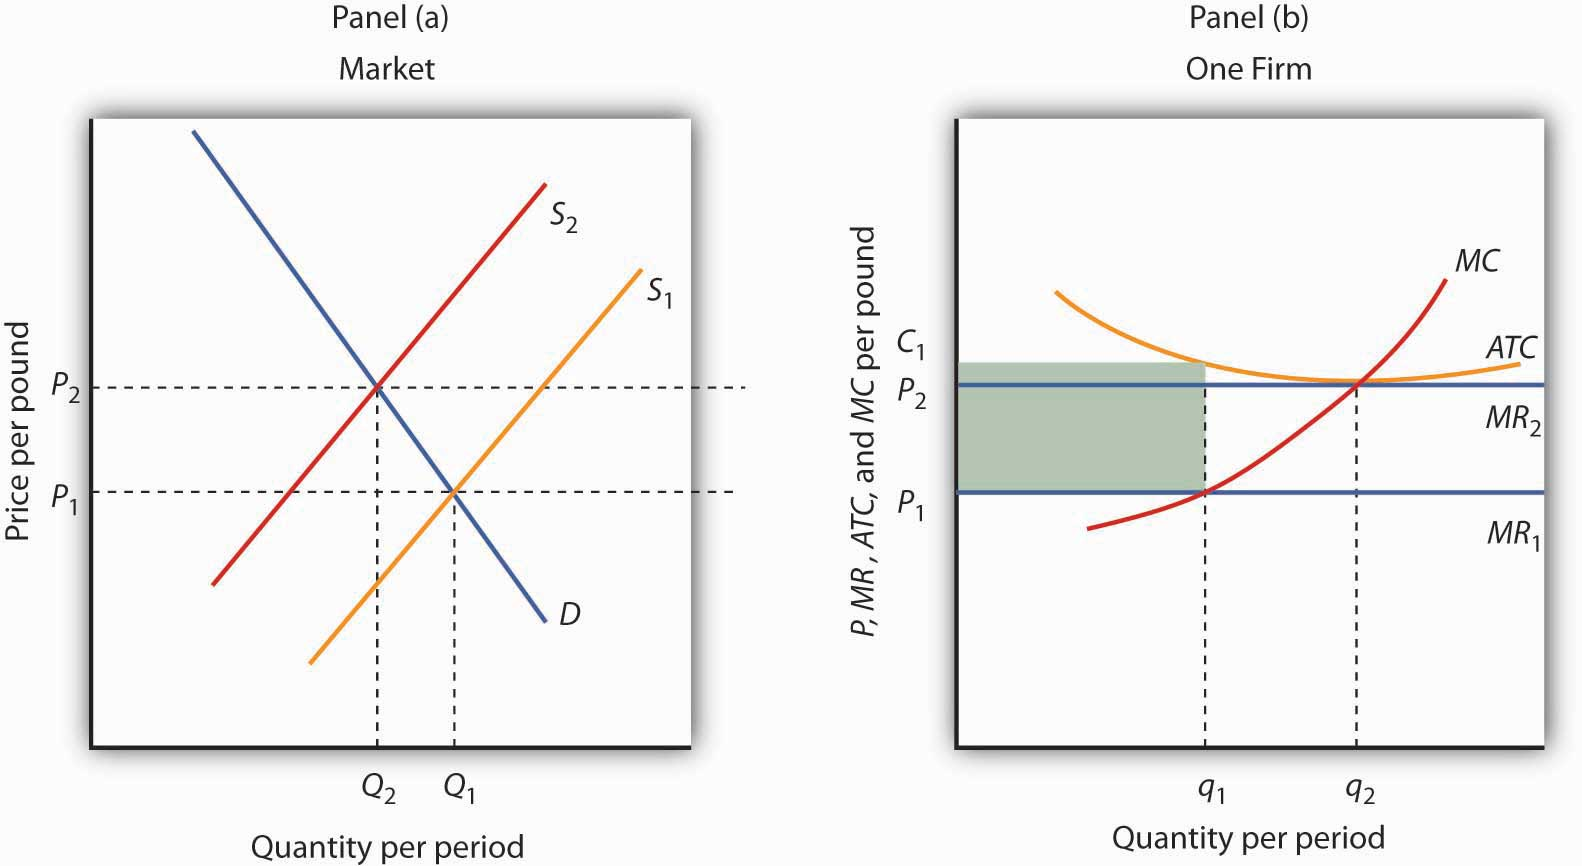 should firms price discriminate why or why not To price discriminate or not: product choice and the selection bias problem   we explicitly model a firm's incentive to price discriminate by choosing to be   considerations that can arise in an empirical analysis of price discrimination that  is.